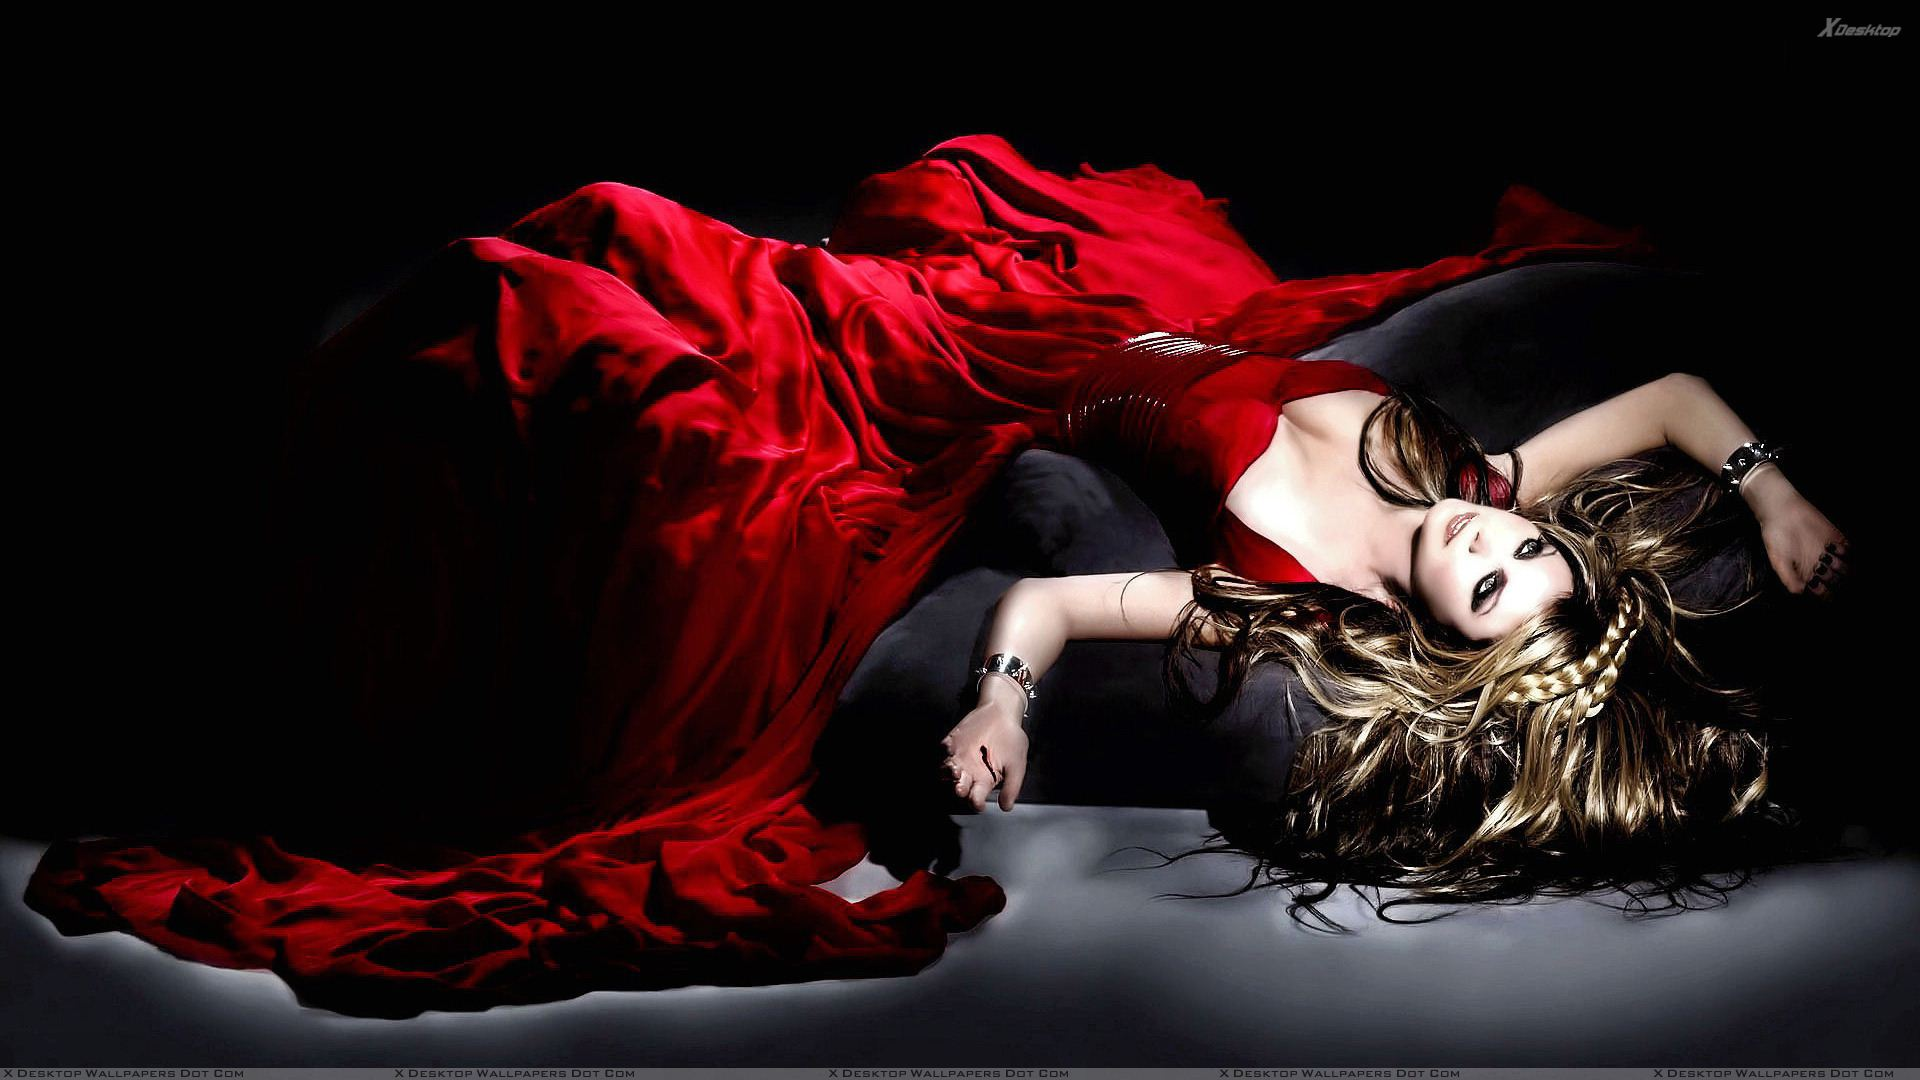 Sarah Brightman Wallpapers Photos Images in HD 1920x1080